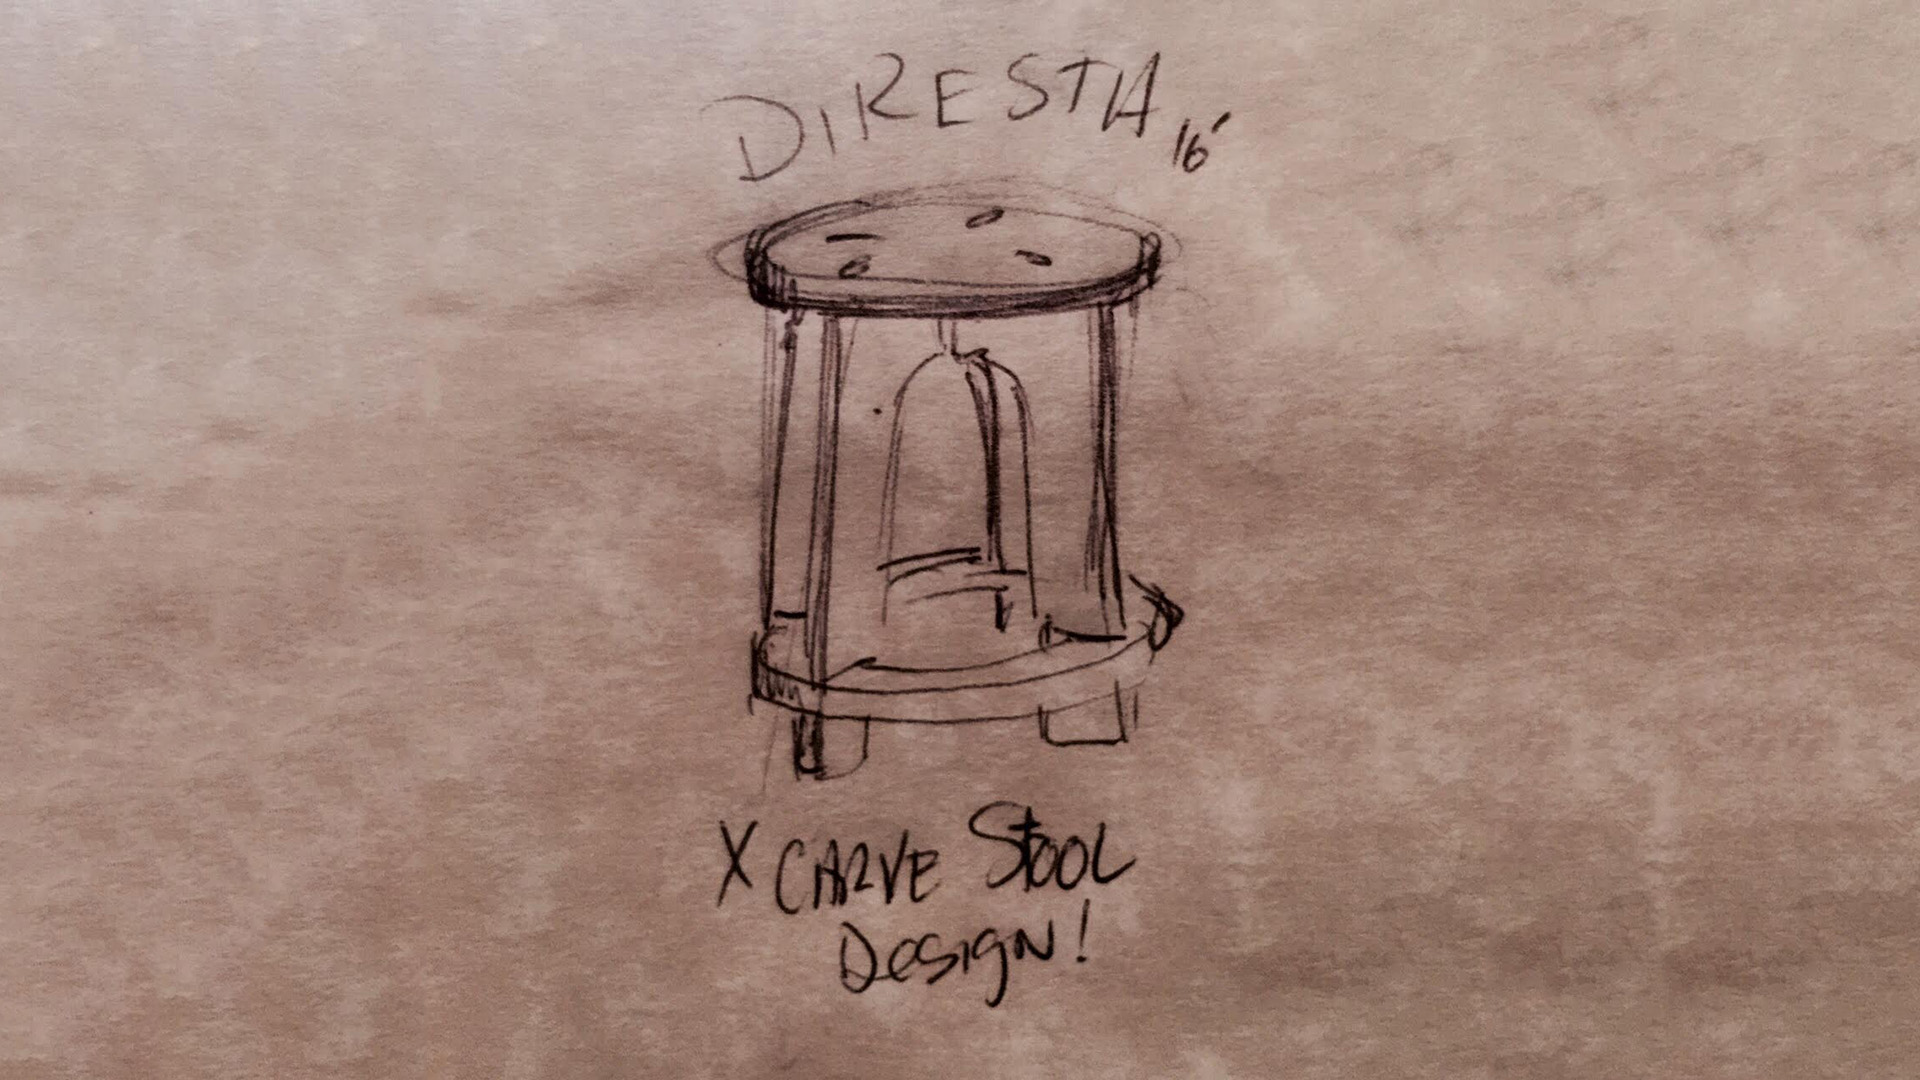 DiResta: X-Carve Stool Design